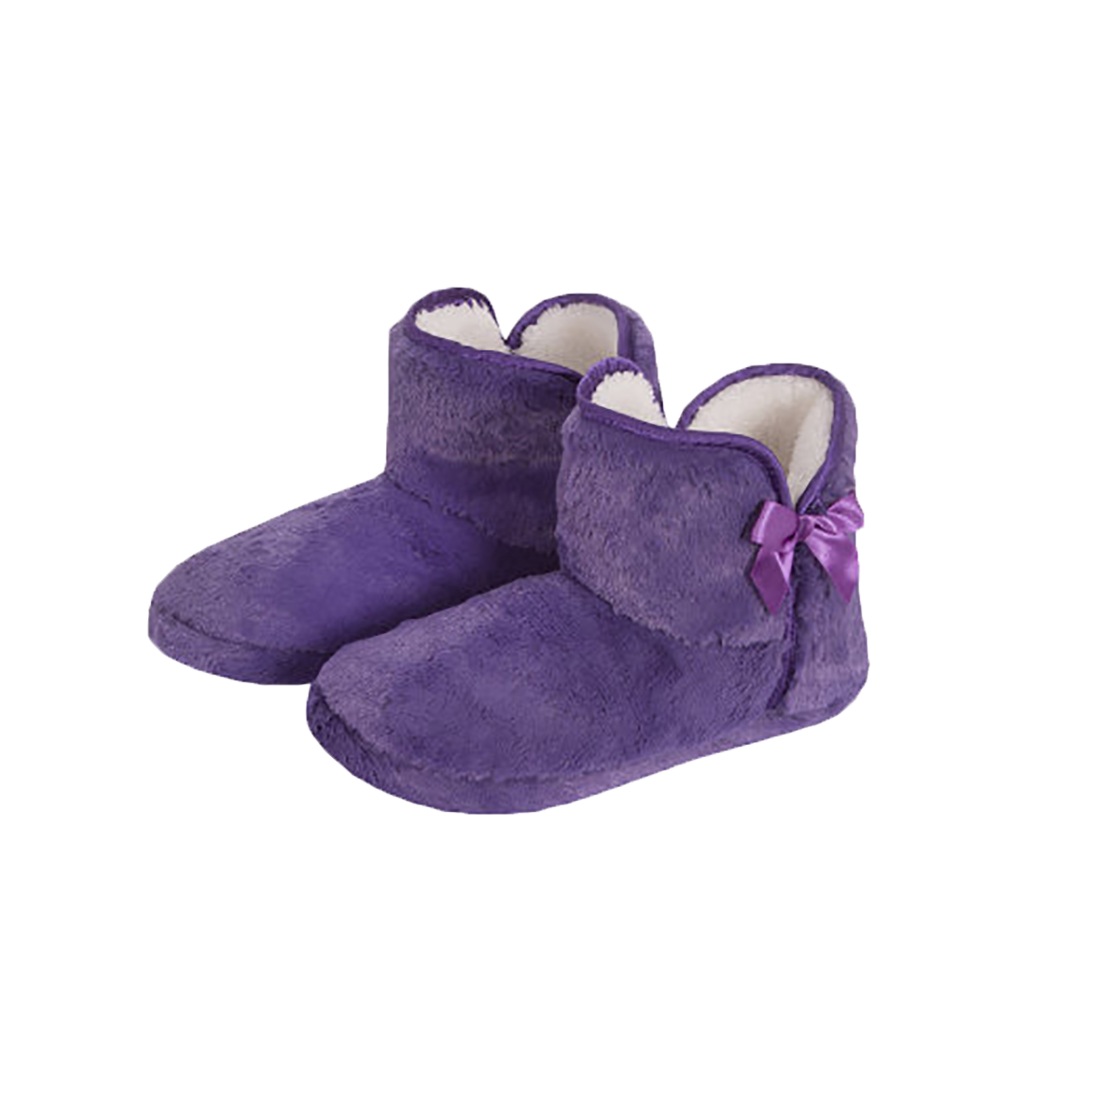 LADIES FUN NOVELTY SLIPPERS SELECTION BY  FOREVER DREAMING